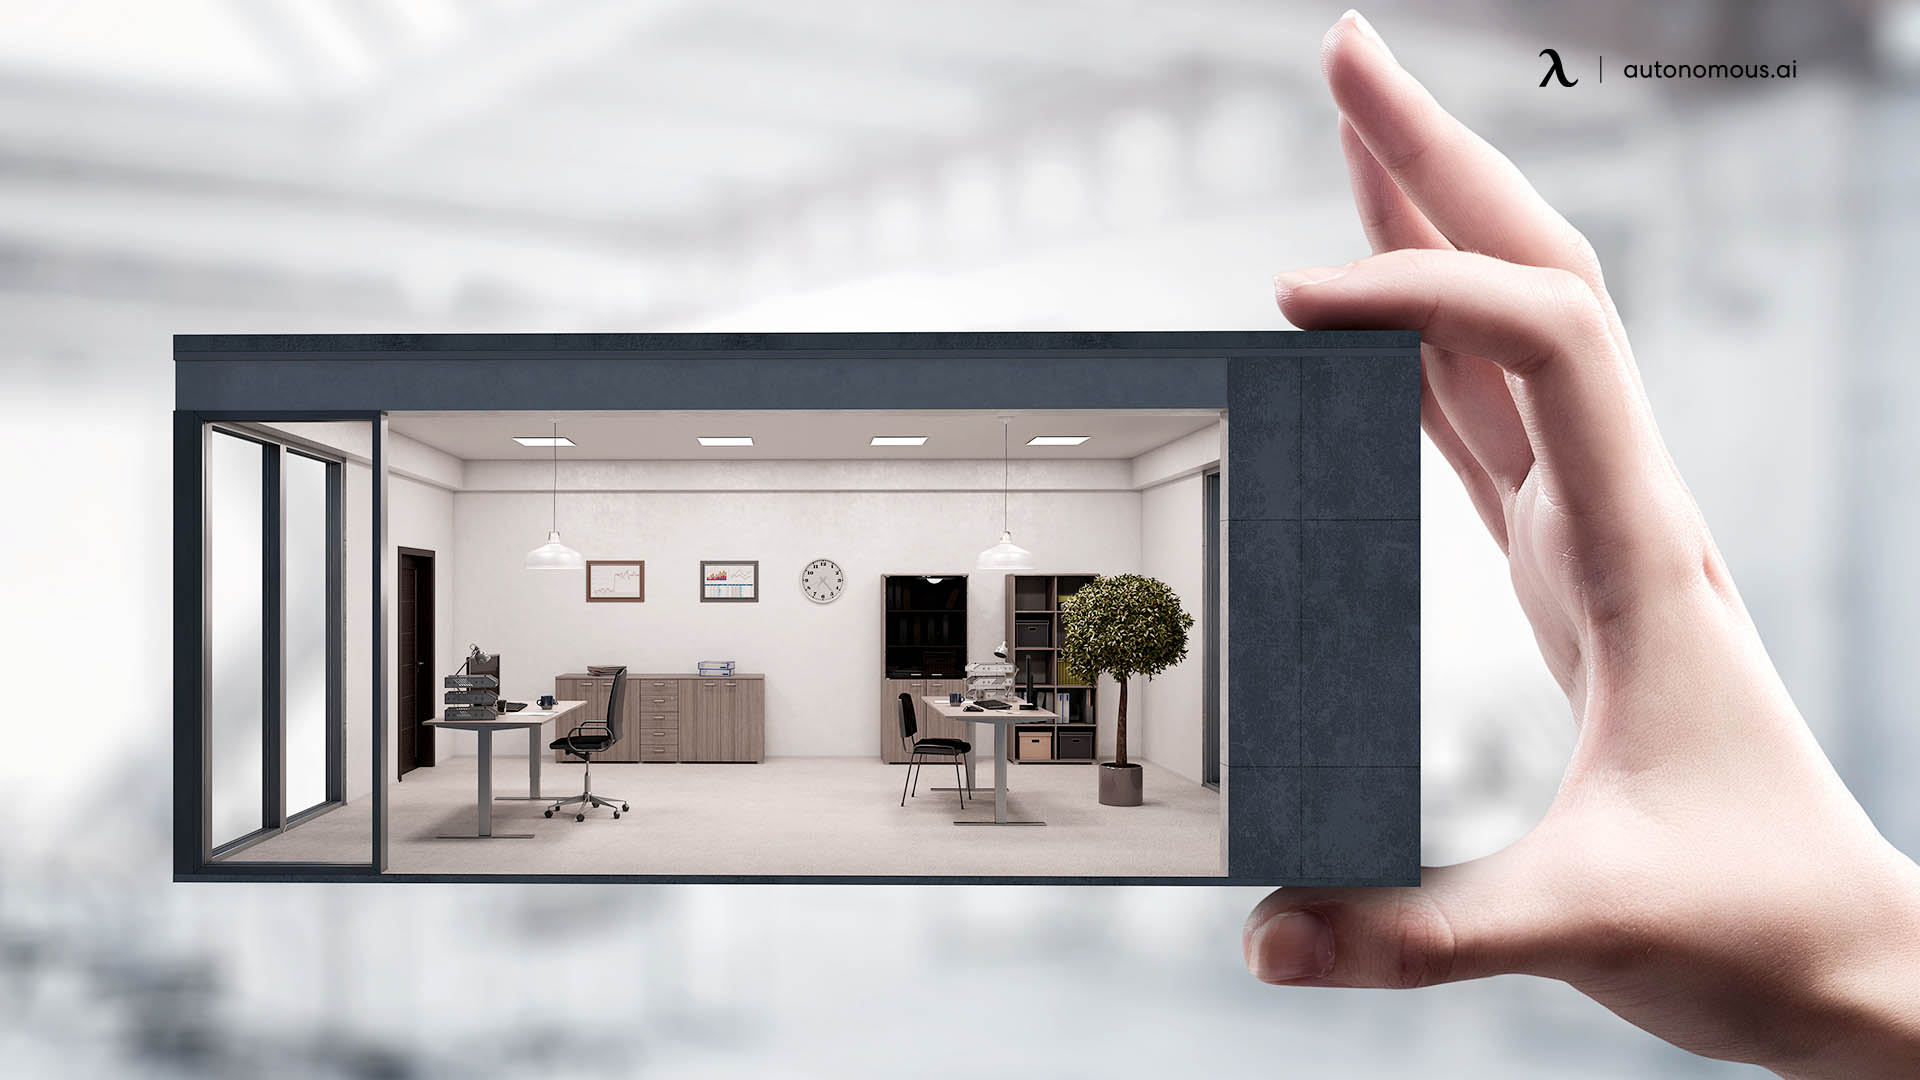 Elements to consider for office interior design